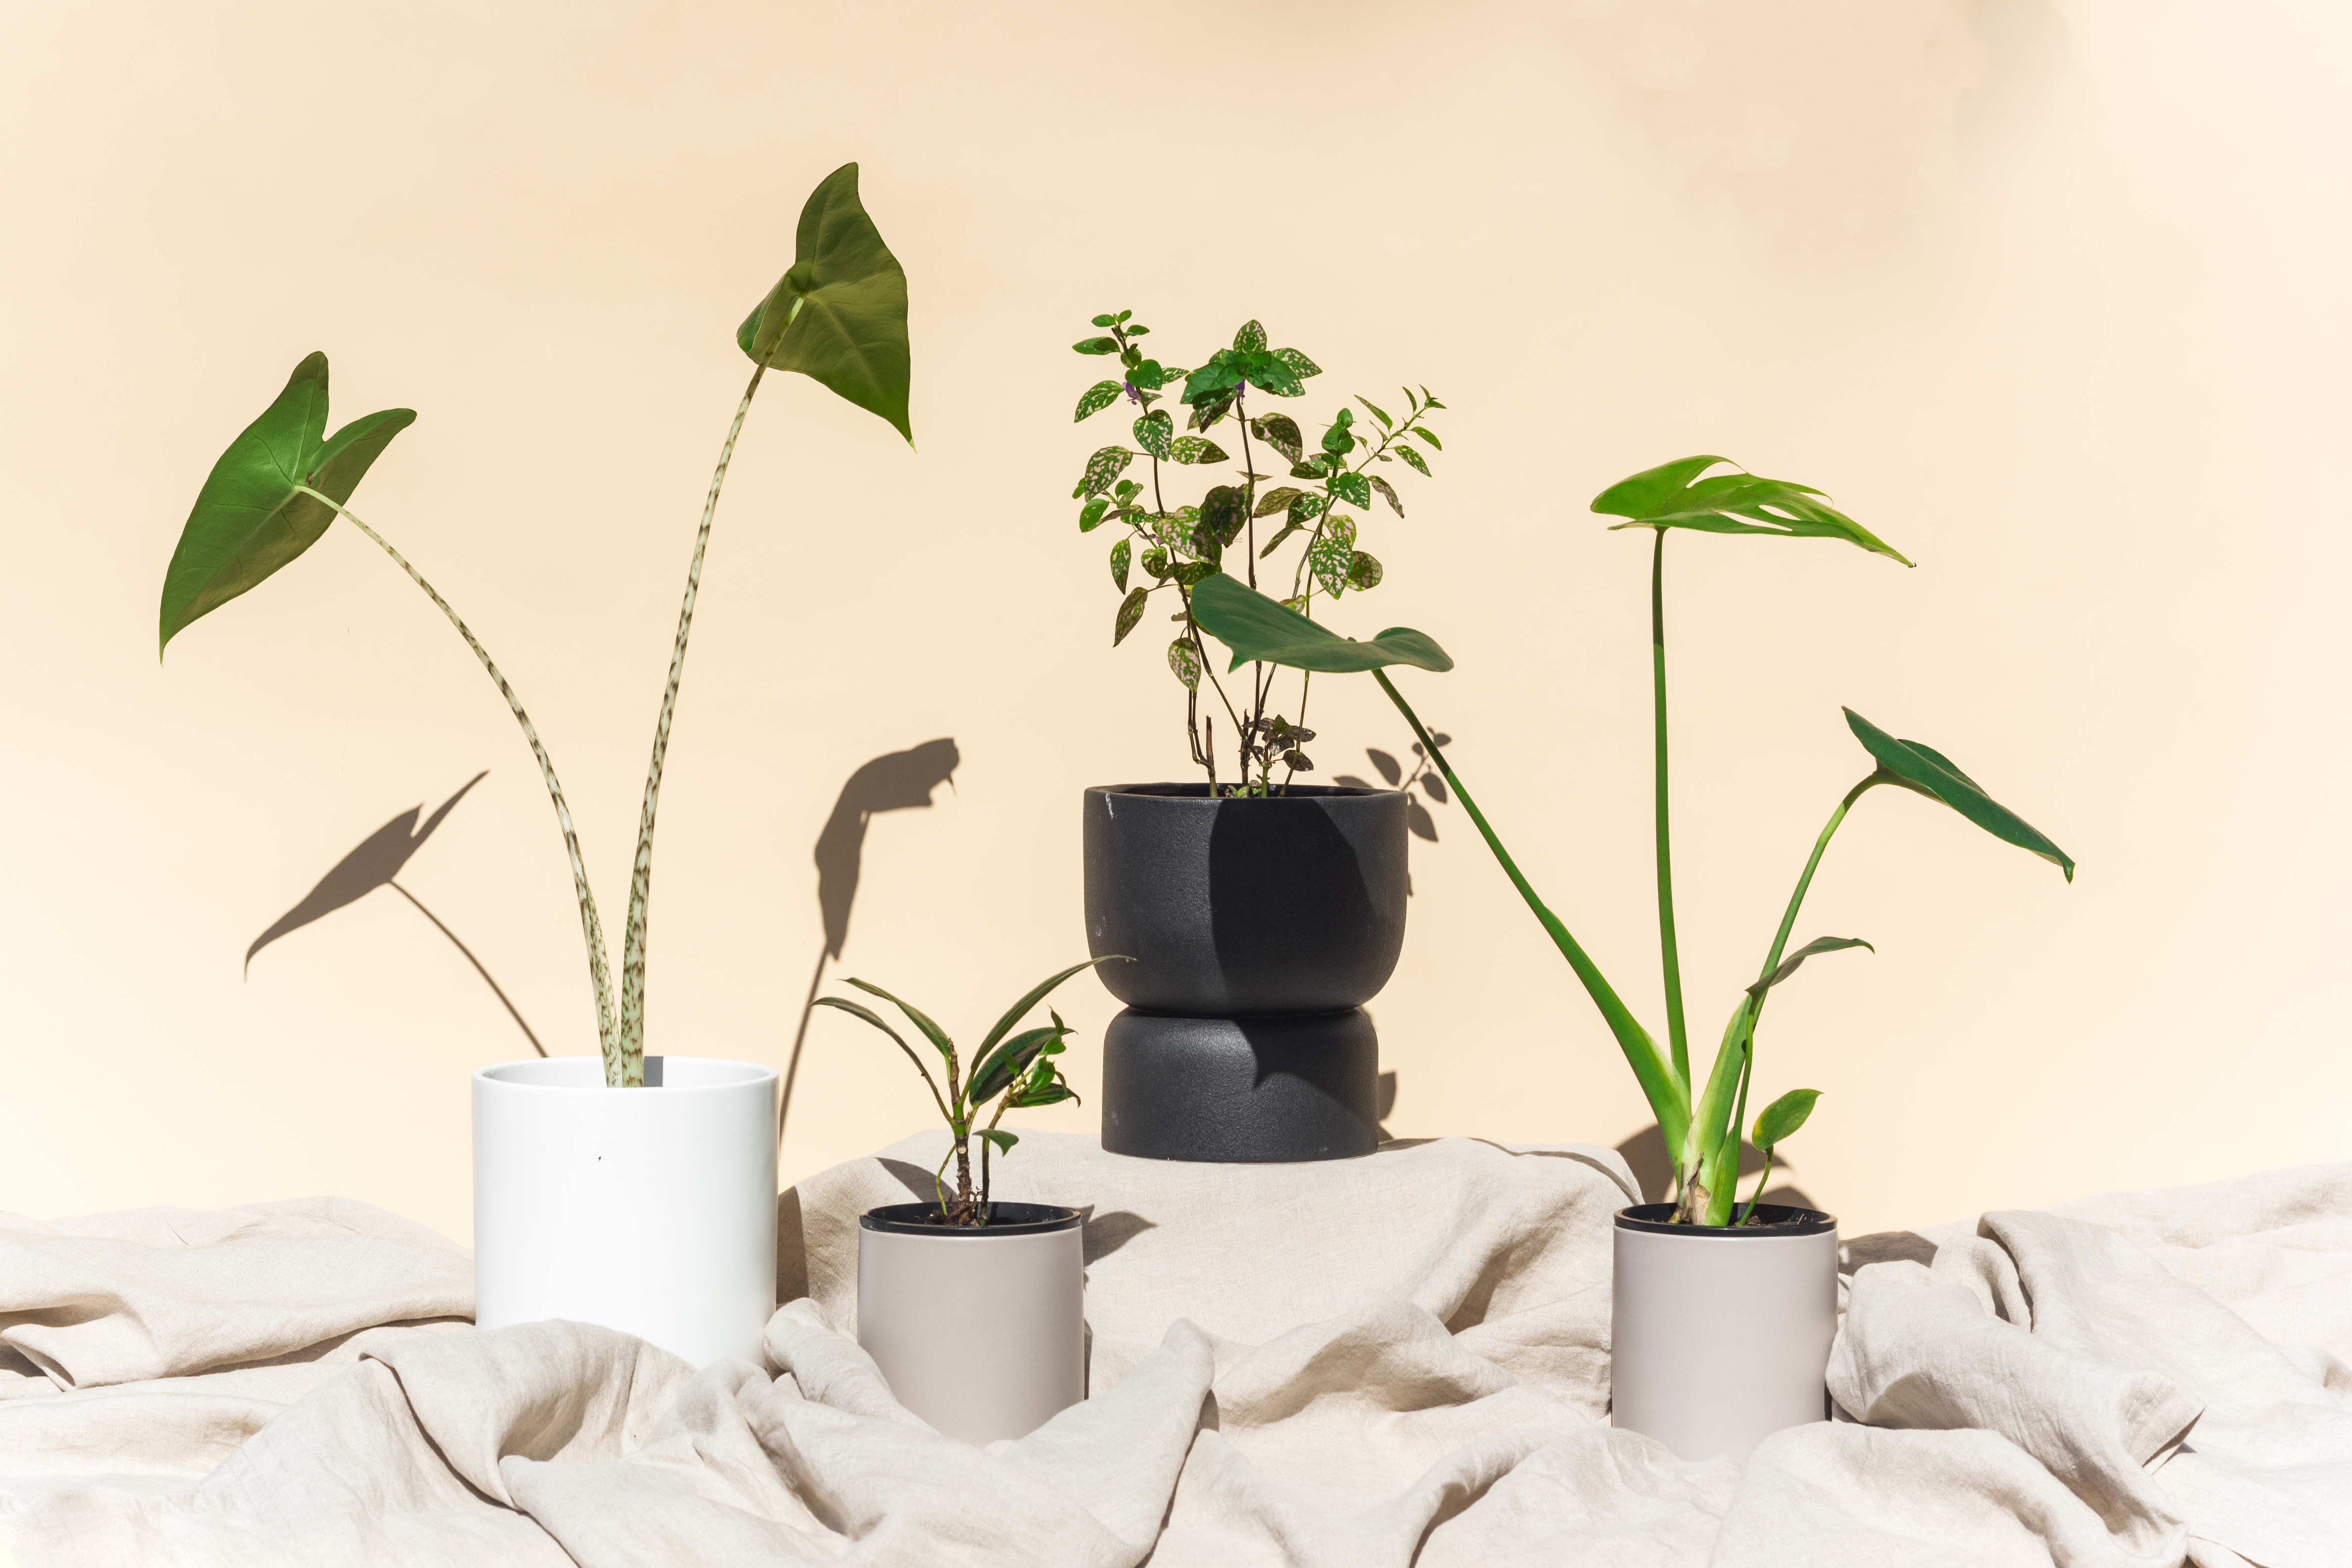 A group of potted plants  Description automatically generated with medium confidence